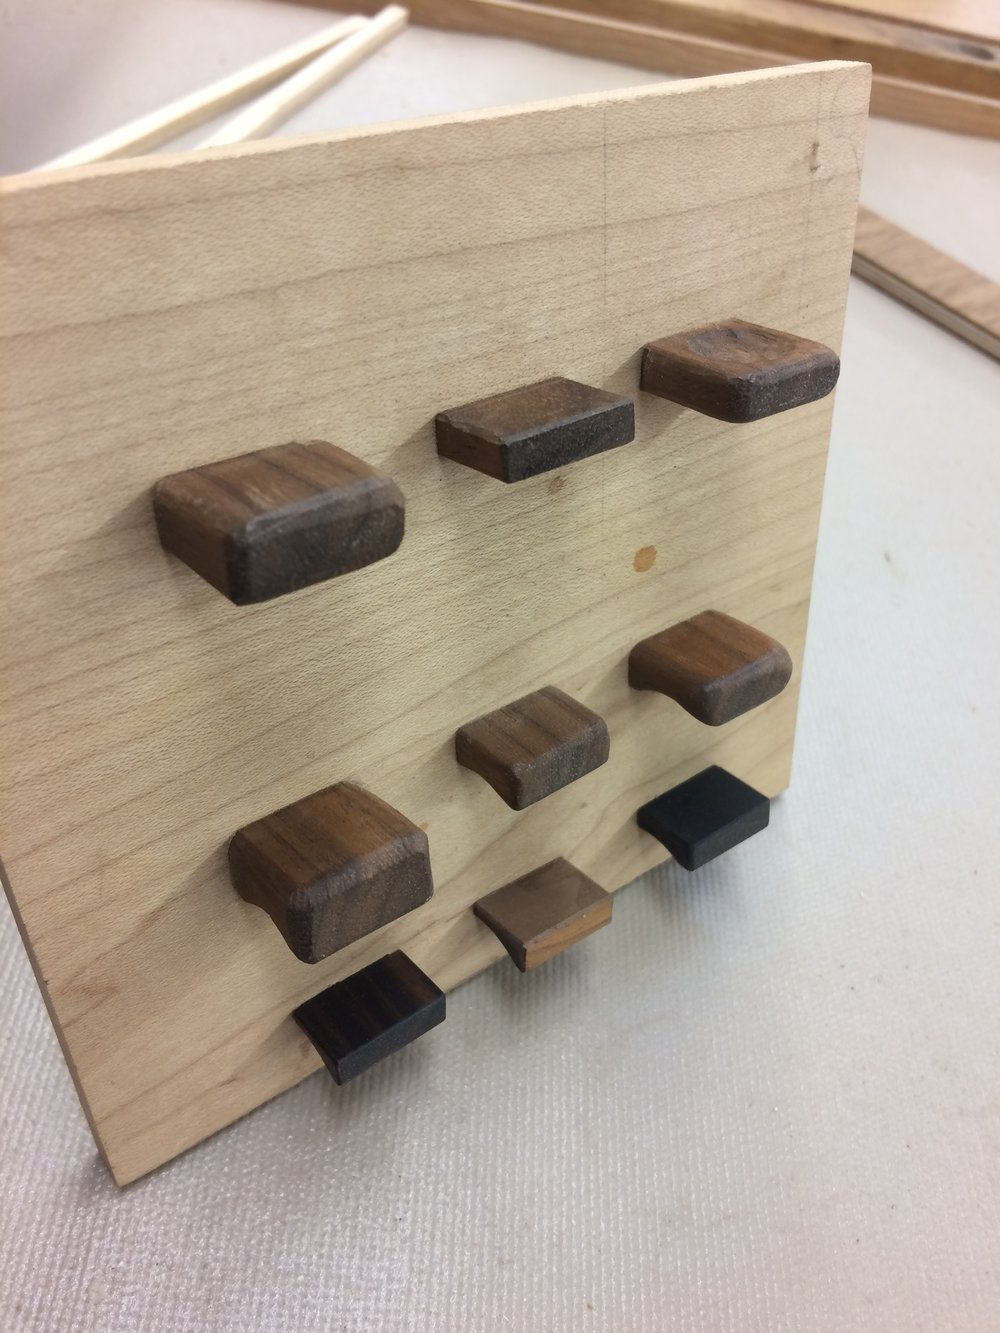 Walnut and ebony pull prototypes. The upper row has hand carved dimples underneath as a little tactile surprise. I think I will go with something from the bottom row, however. The cabinet is brutal in form and a pull that is similarly planar will fit its gestalt.